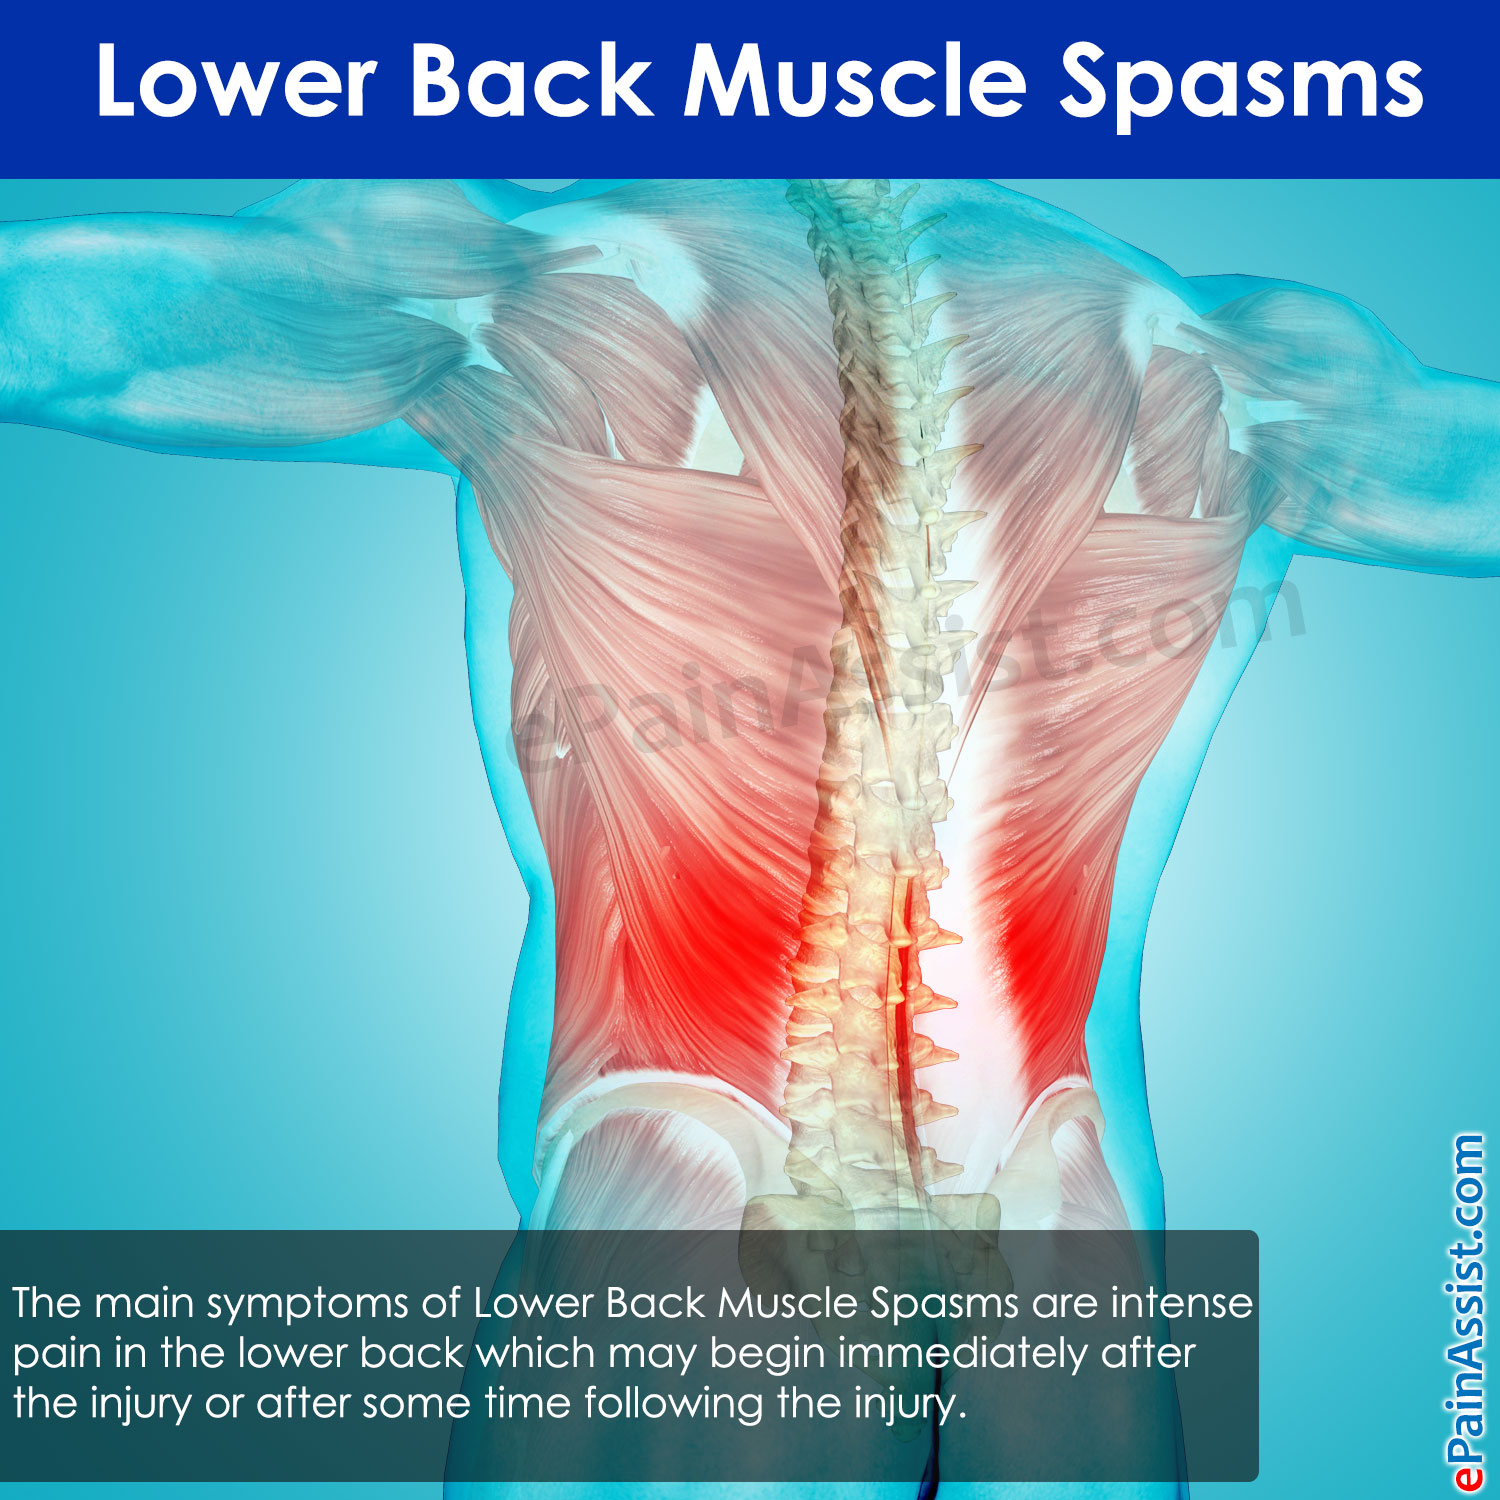 Lower Back Muscle Spasms: Treatment, Causes, Symptoms